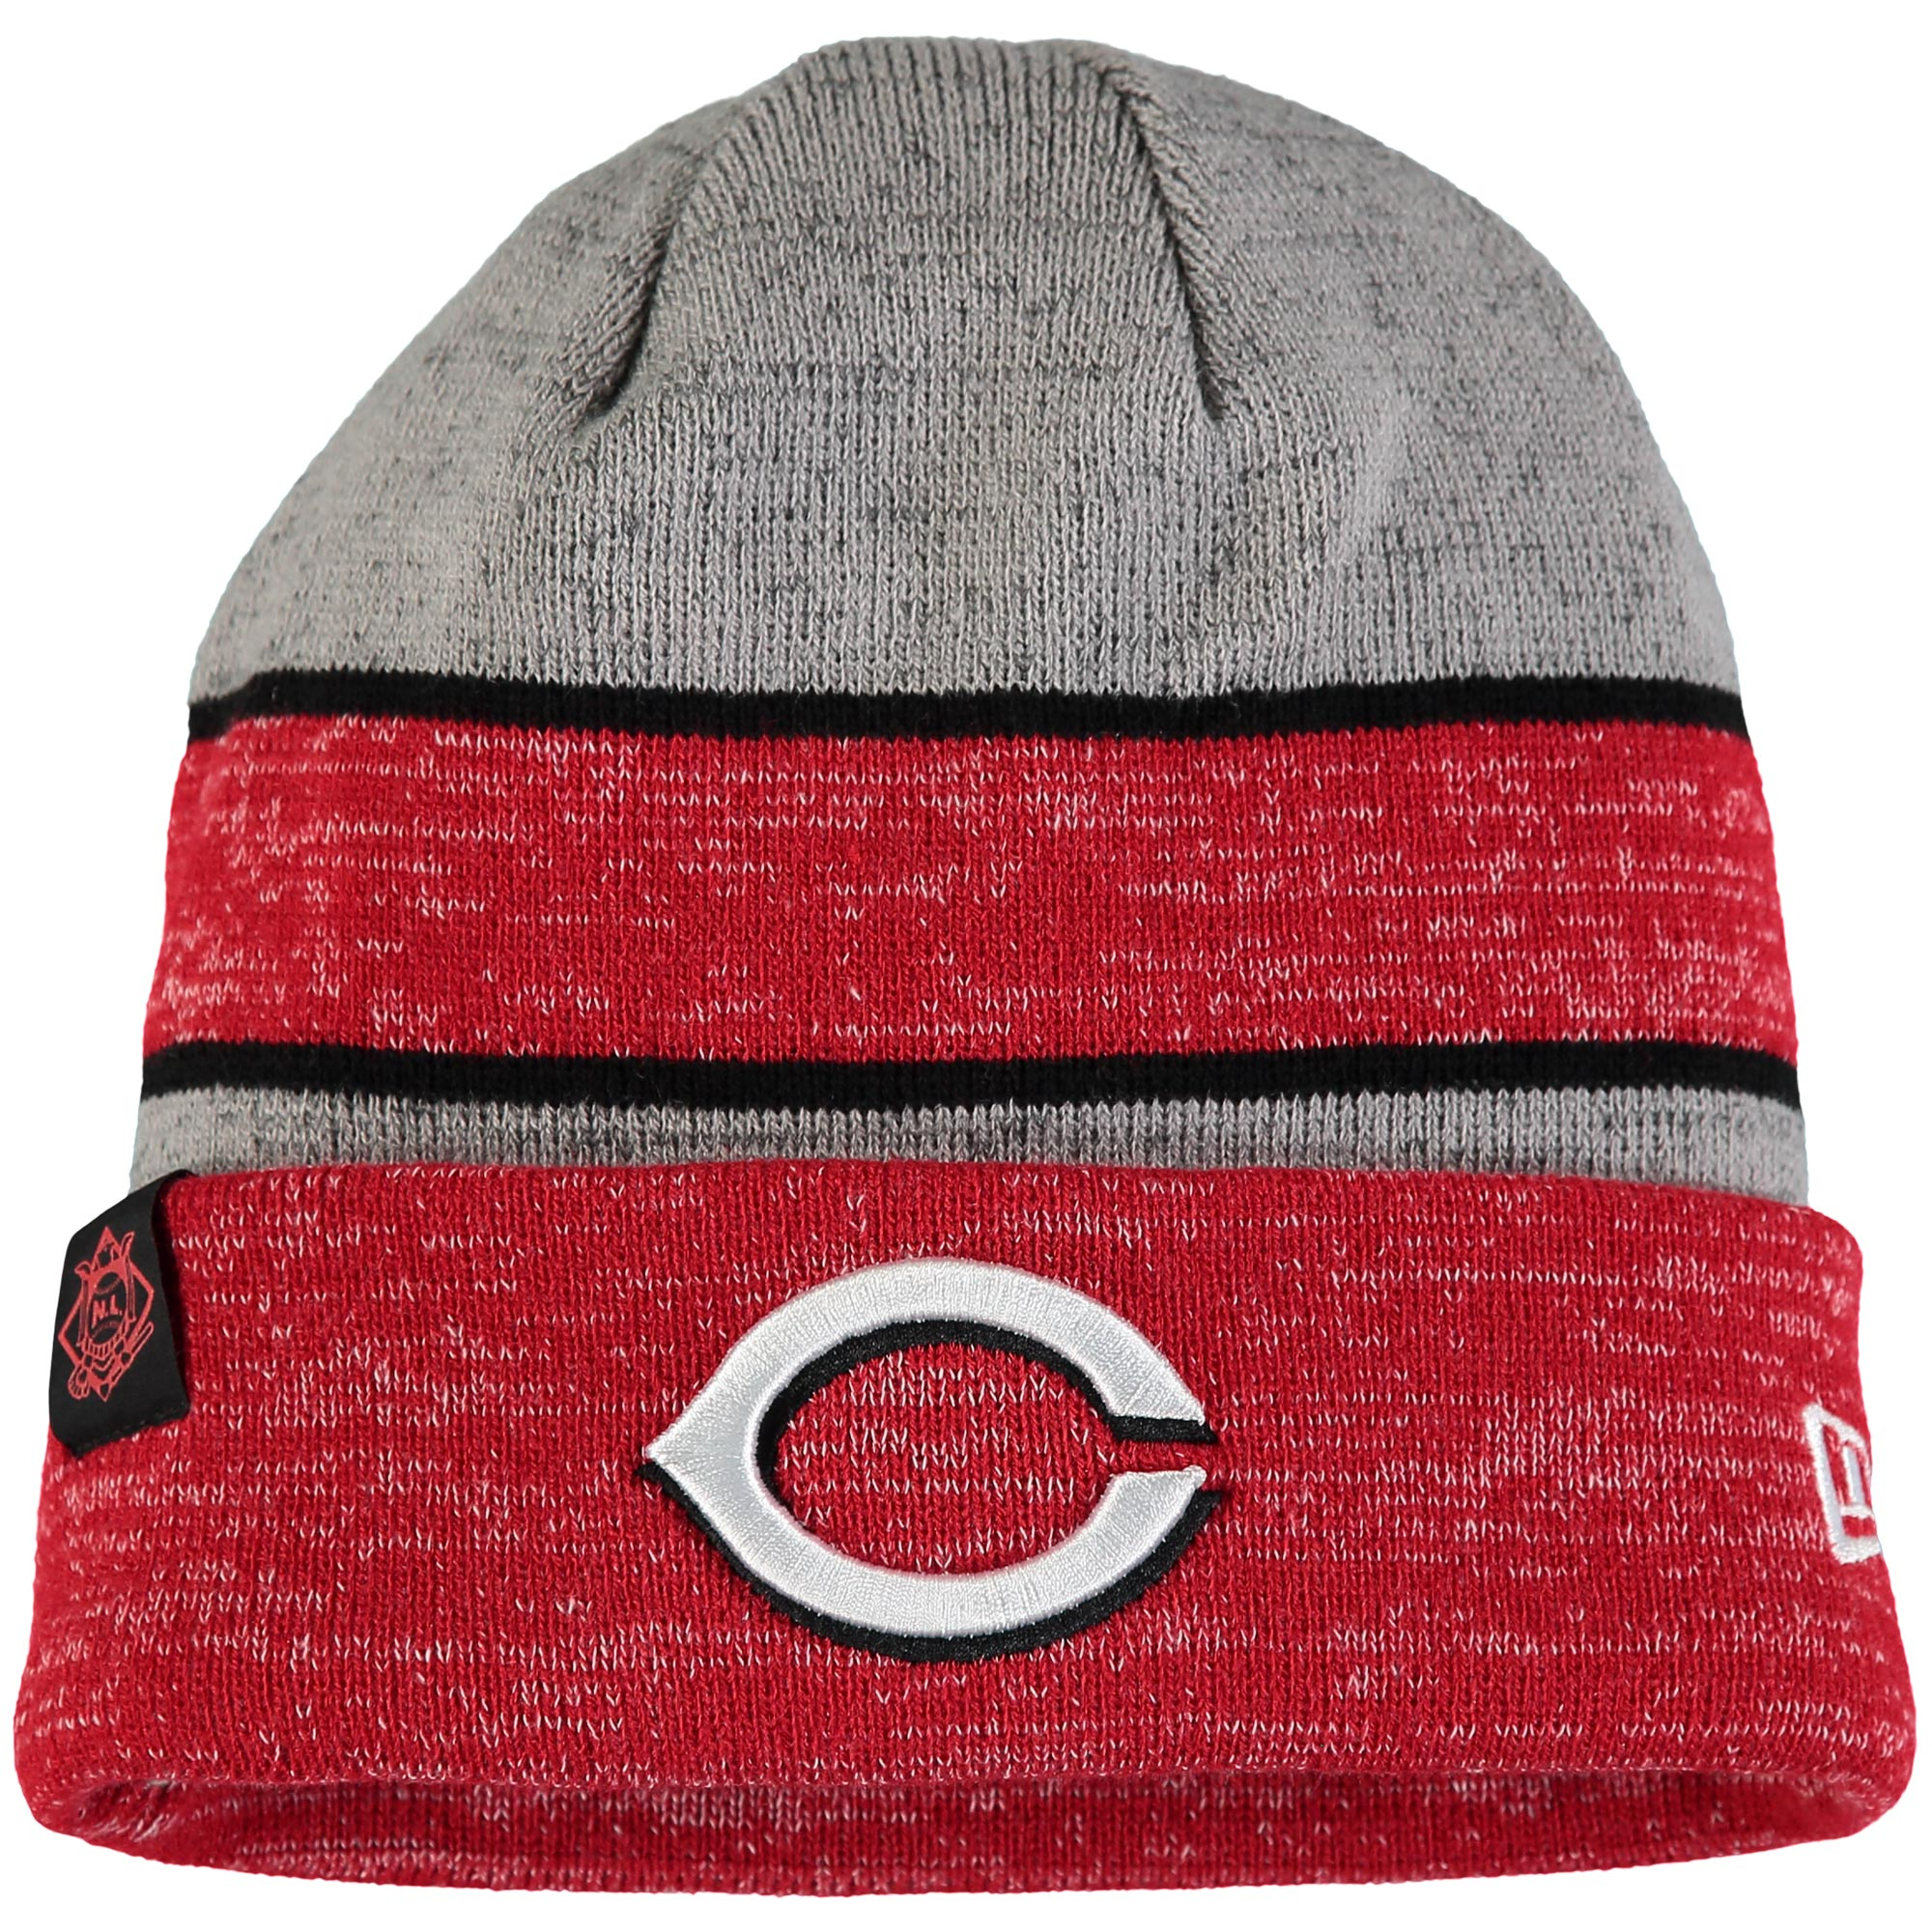 Cincinnati Reds New Era On Field Sport Cuffed Knit Hat - Heathered Gray/Heathered Red - OSFA